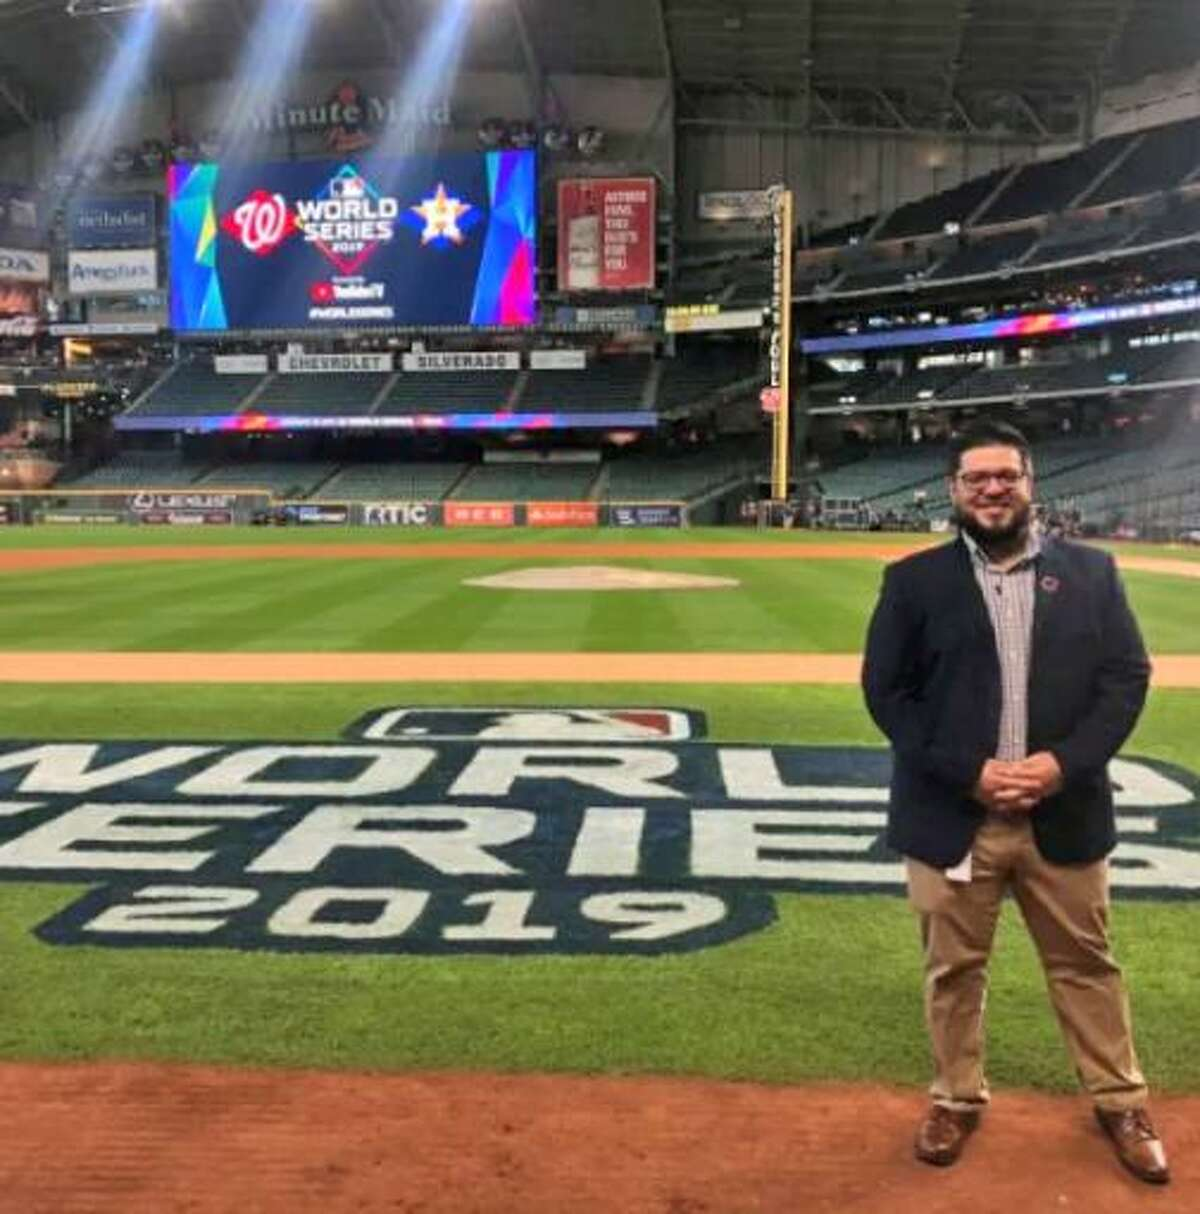 In January 2019, the Houston Astros hired Stafford High School graduate Jason Montes to work in their IT department.